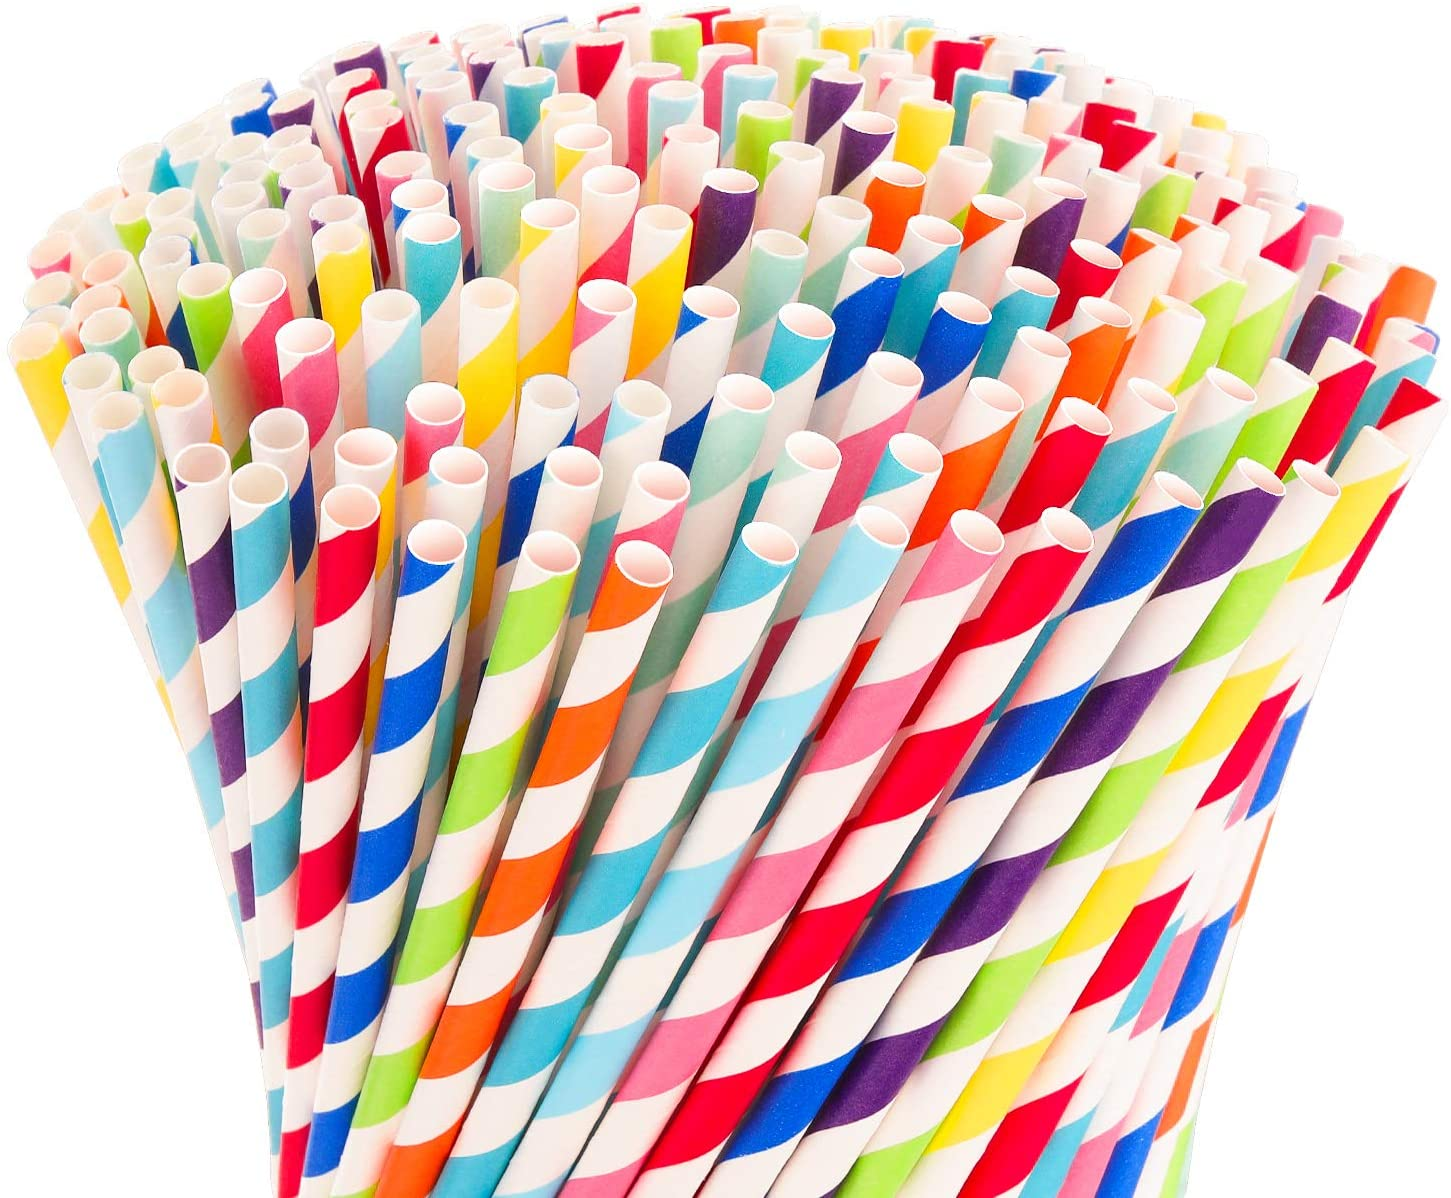 Paper Straw Market Share to Gain CAGR of Over 20% between 2019 and 2025: Facts & Factors